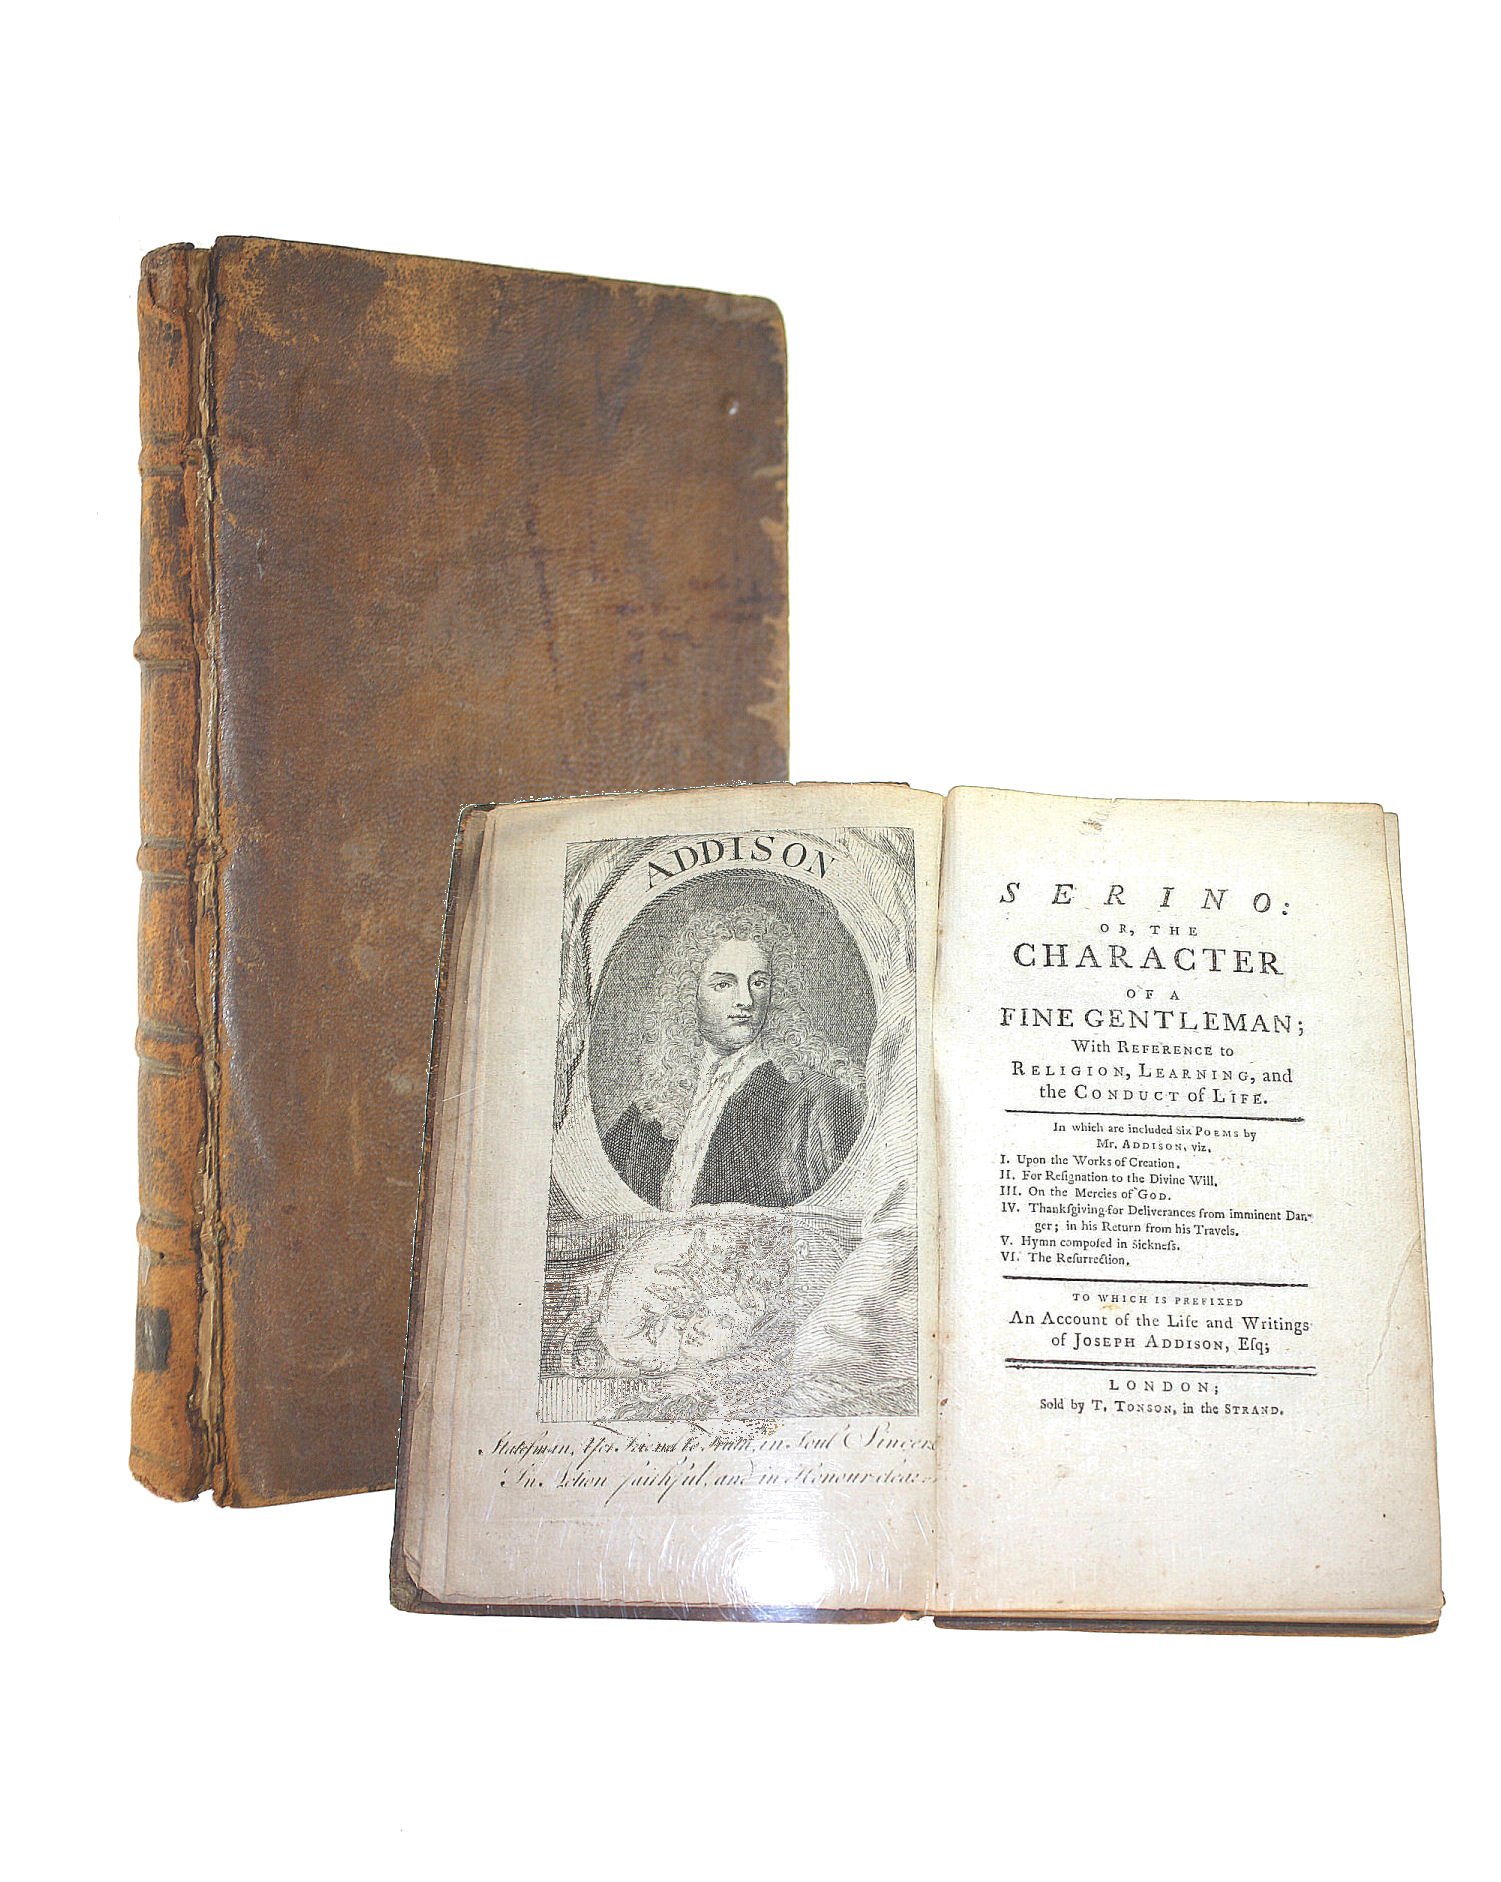 Image for Serino : Or, The Character Of A Fine Gentleman : With Reference To Religion, Learning, And The Conduct Of Life : In Which Are Included Six Poems By Mr. Addison ... To Which Is Prefixed An Account Of The Life And Writings Of Joseph Addison